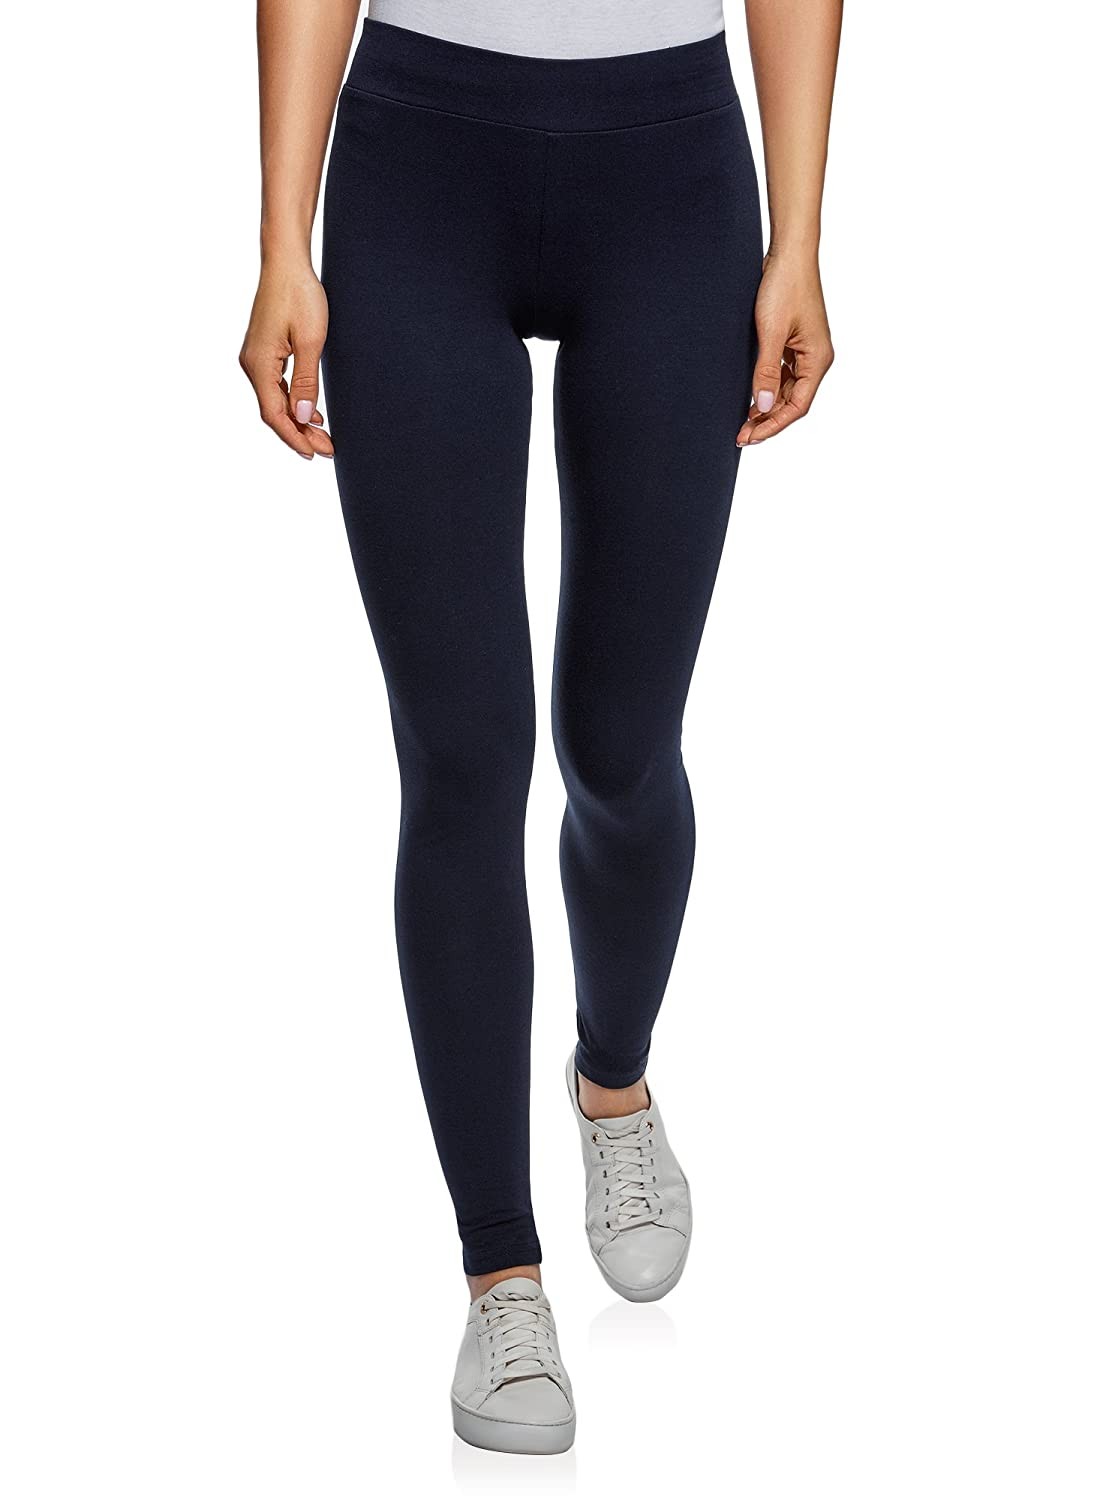 Oodji Ultra Donna Leggings Basic (Pacco Di 2) by Oodji Ultra